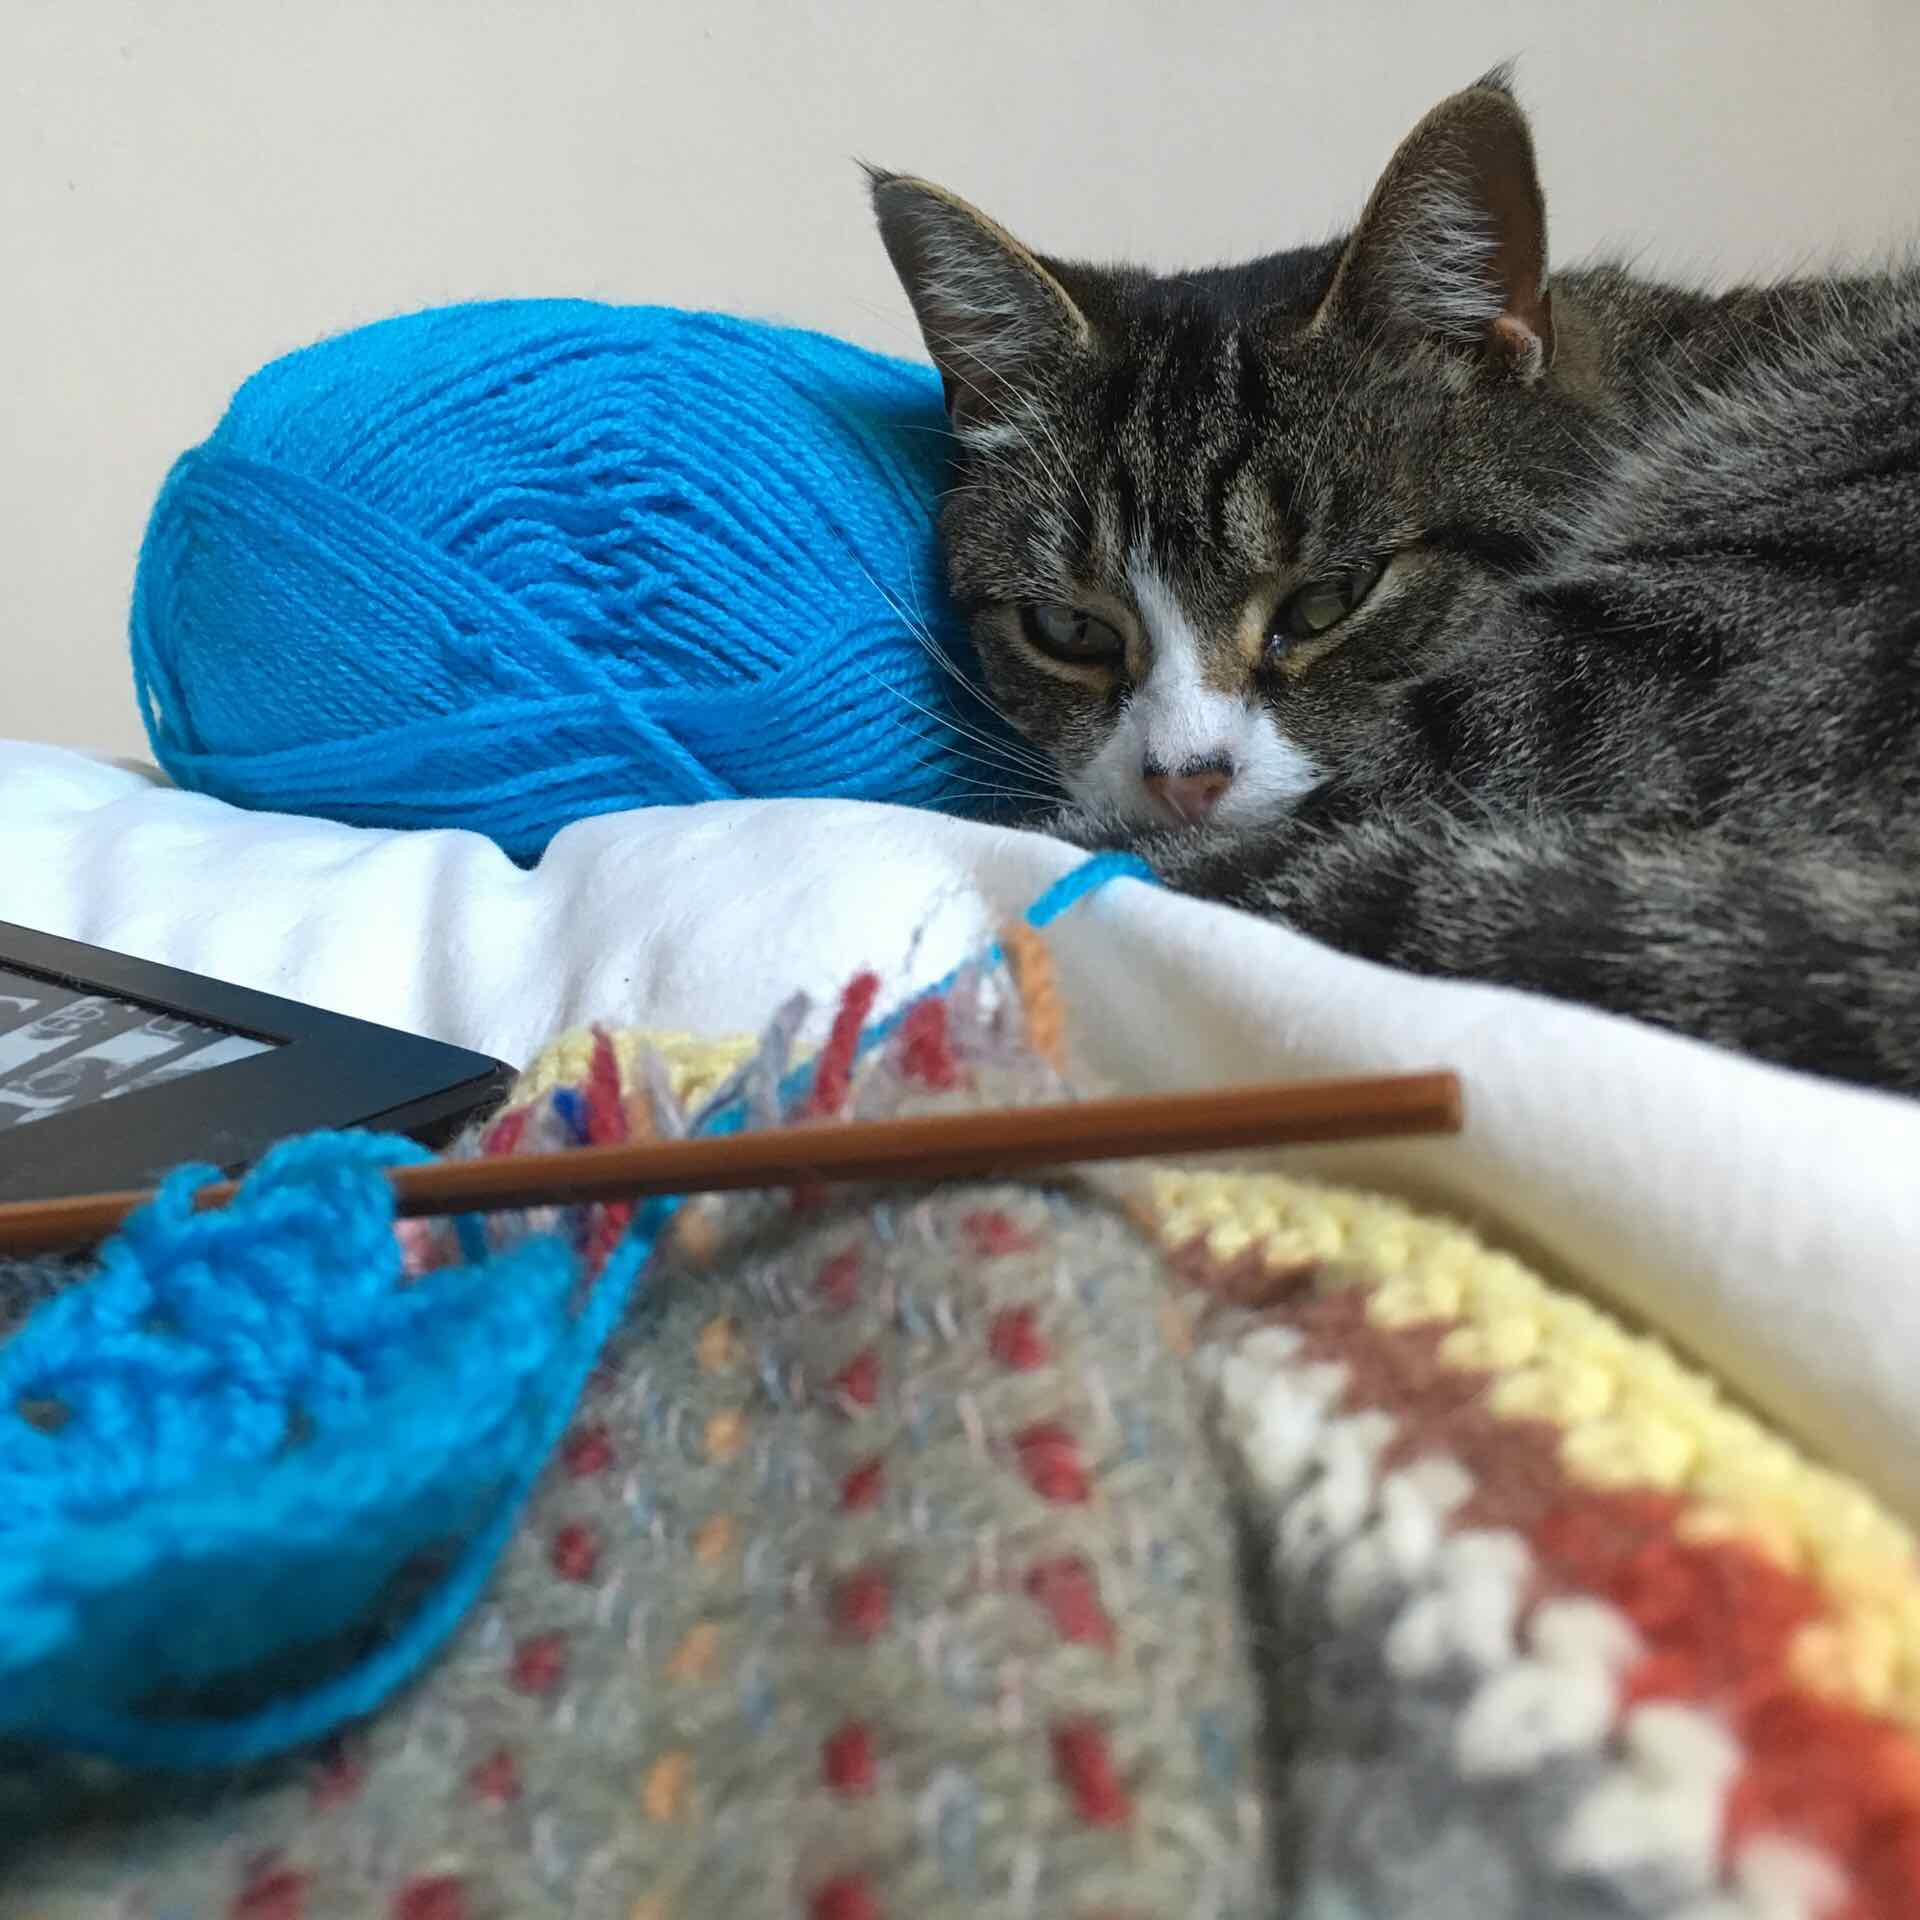 Crocheting with Ounce